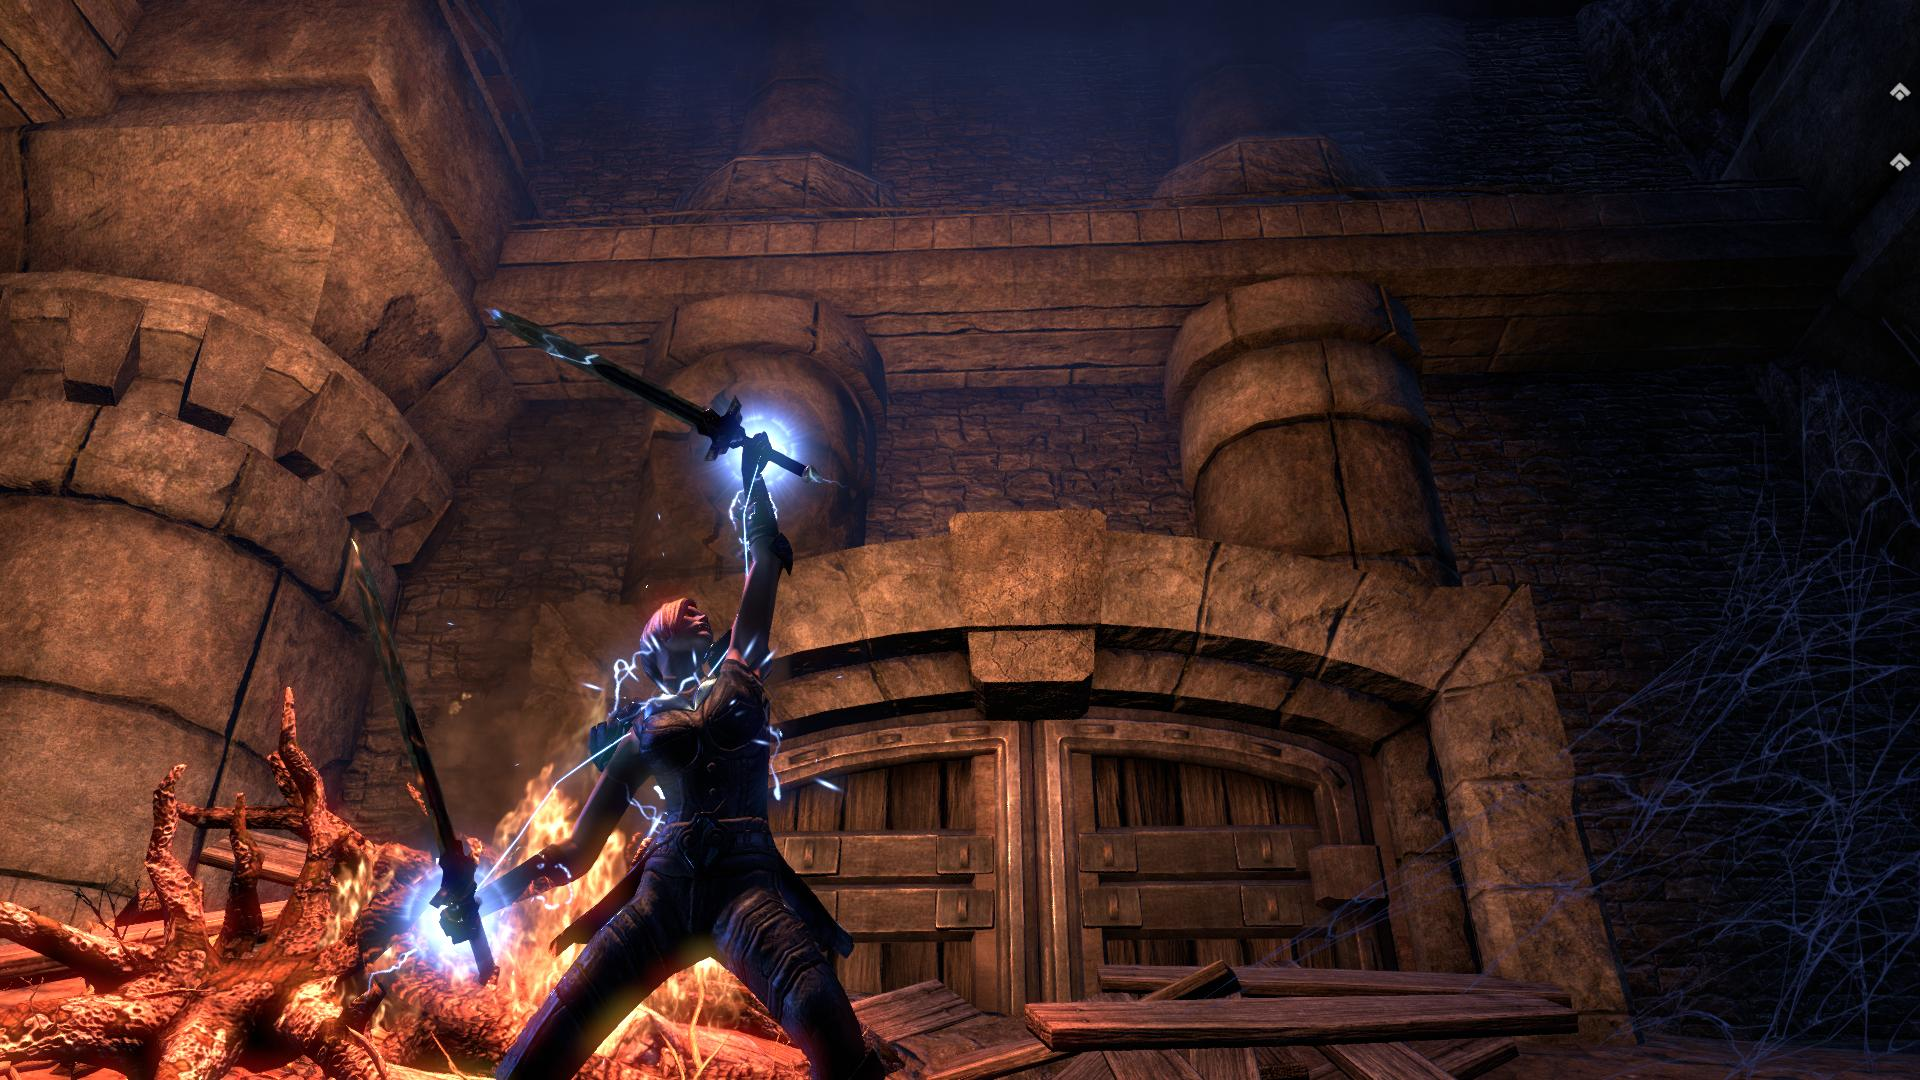 ESO Sorcerer DPS Build the Lighting Tornado 1920x1080